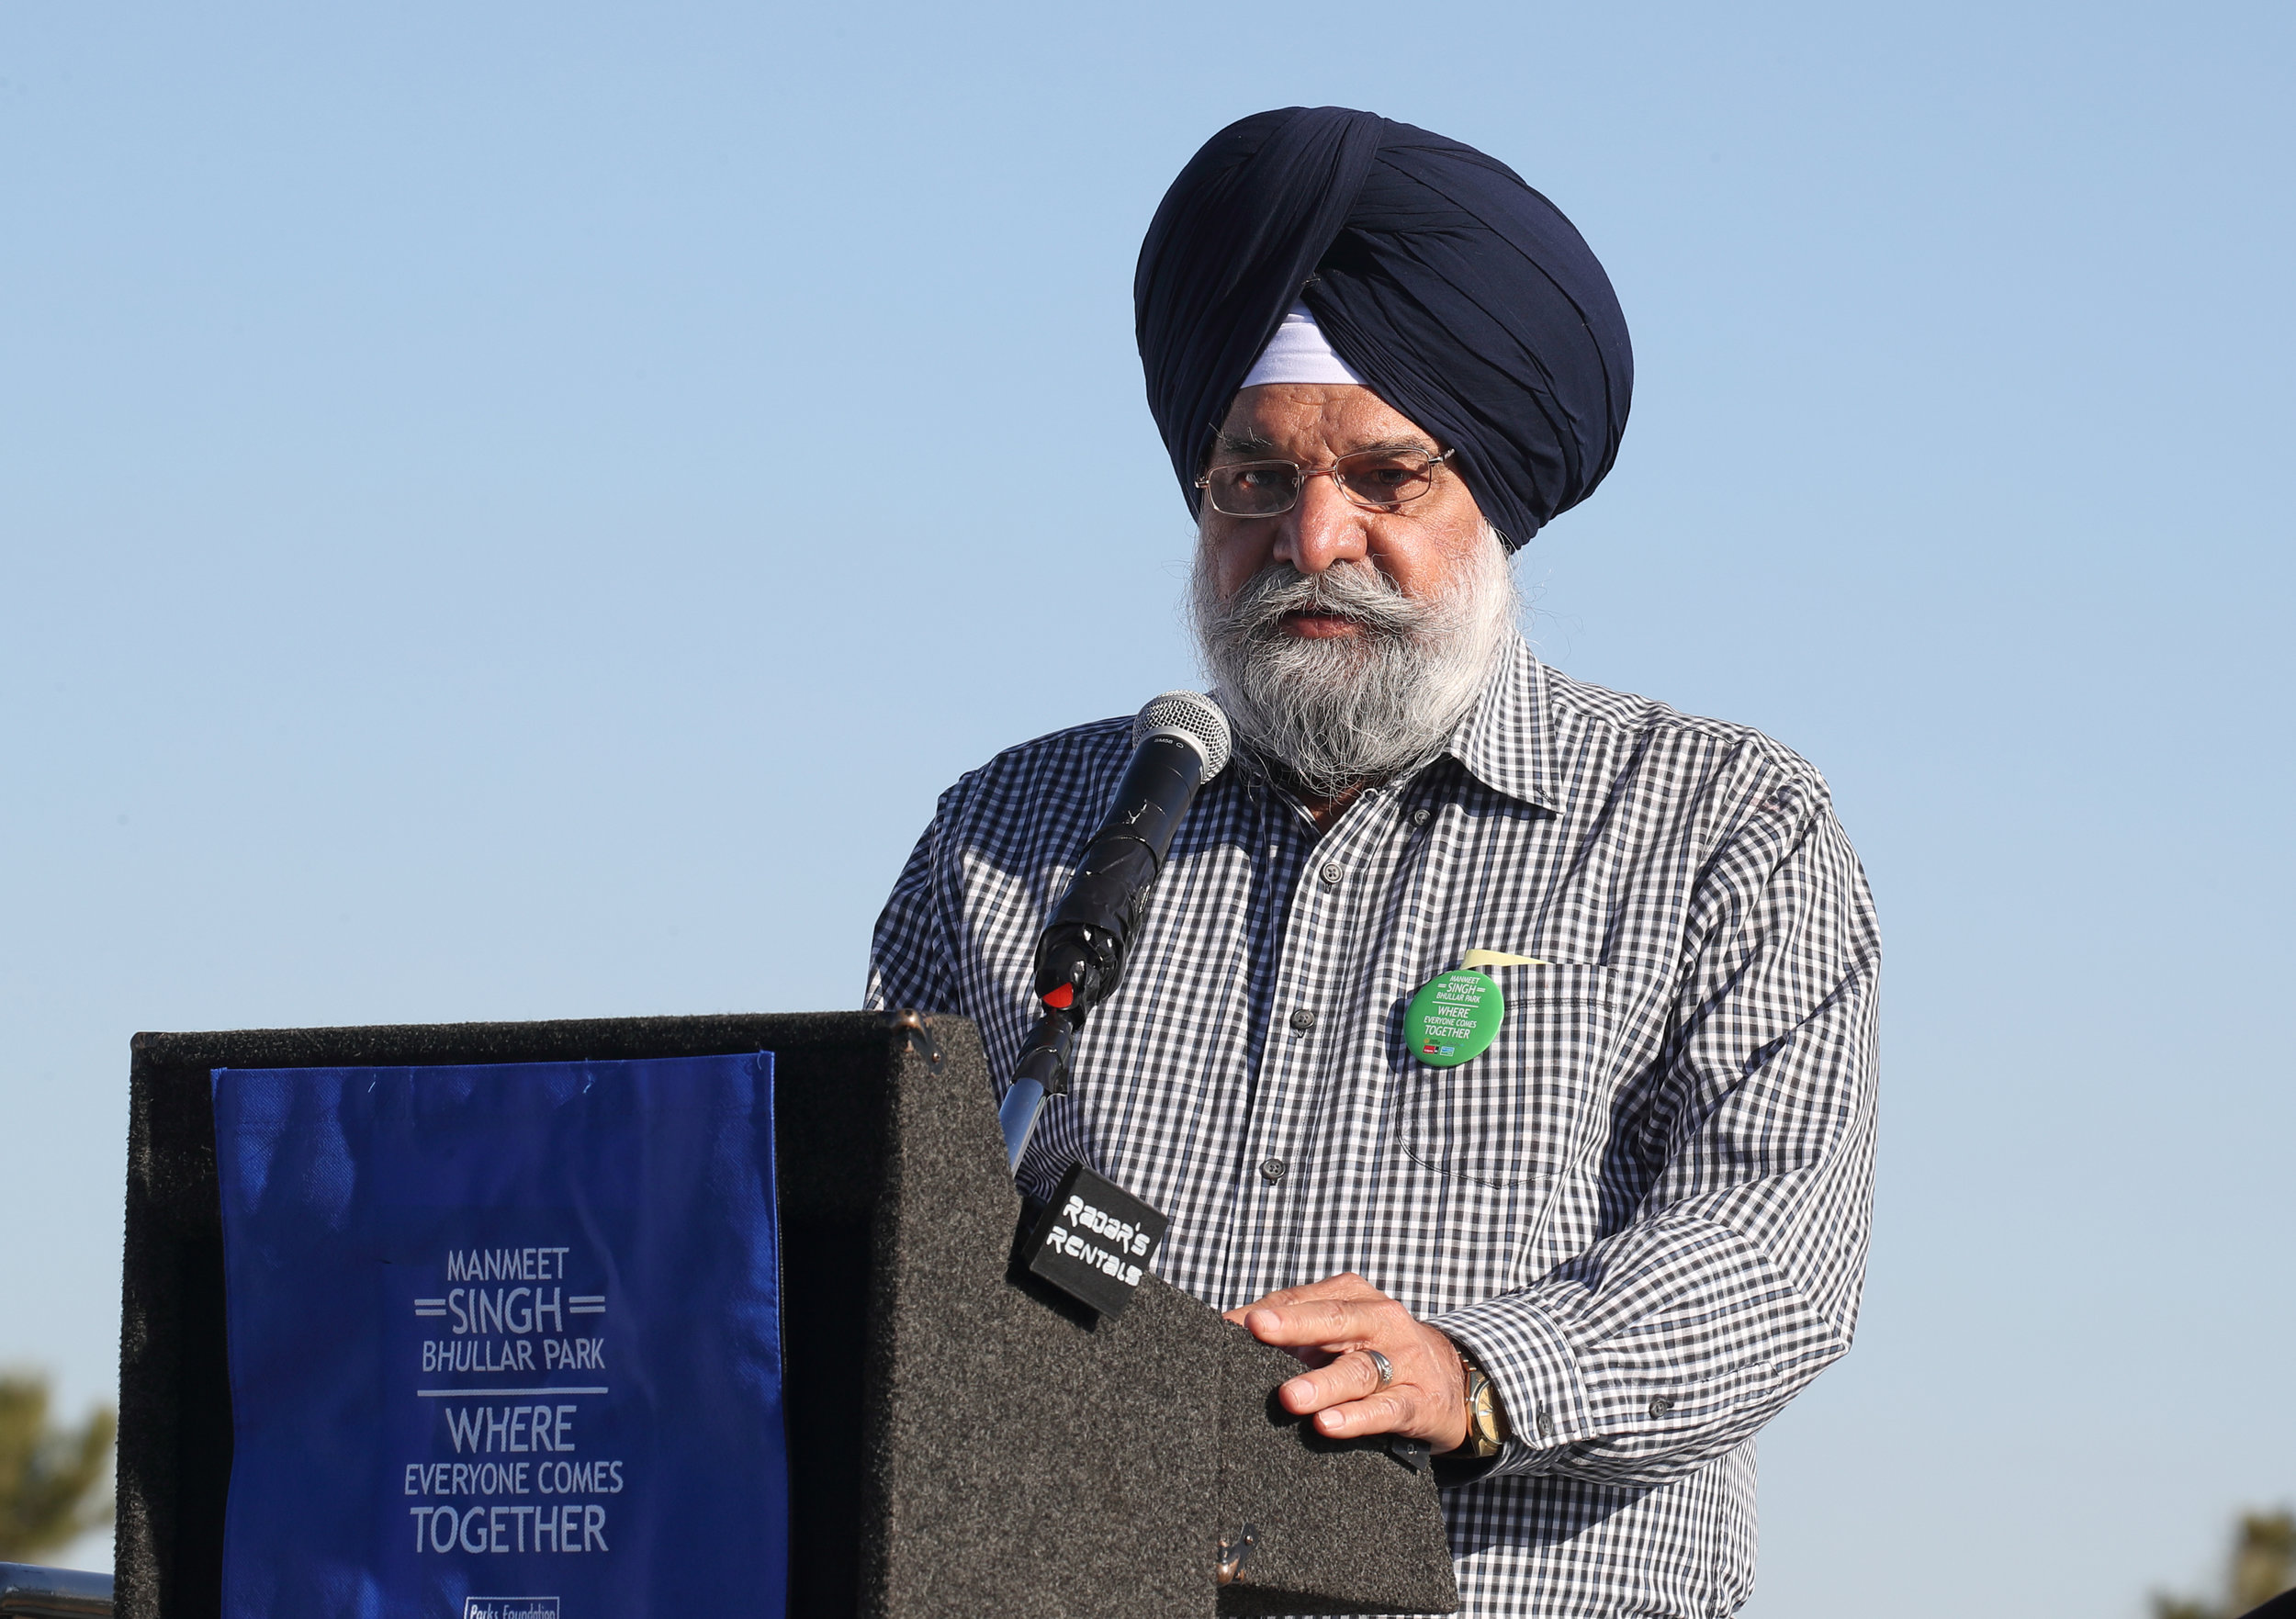 MS Bhullar Park event_0216_DM.jpg